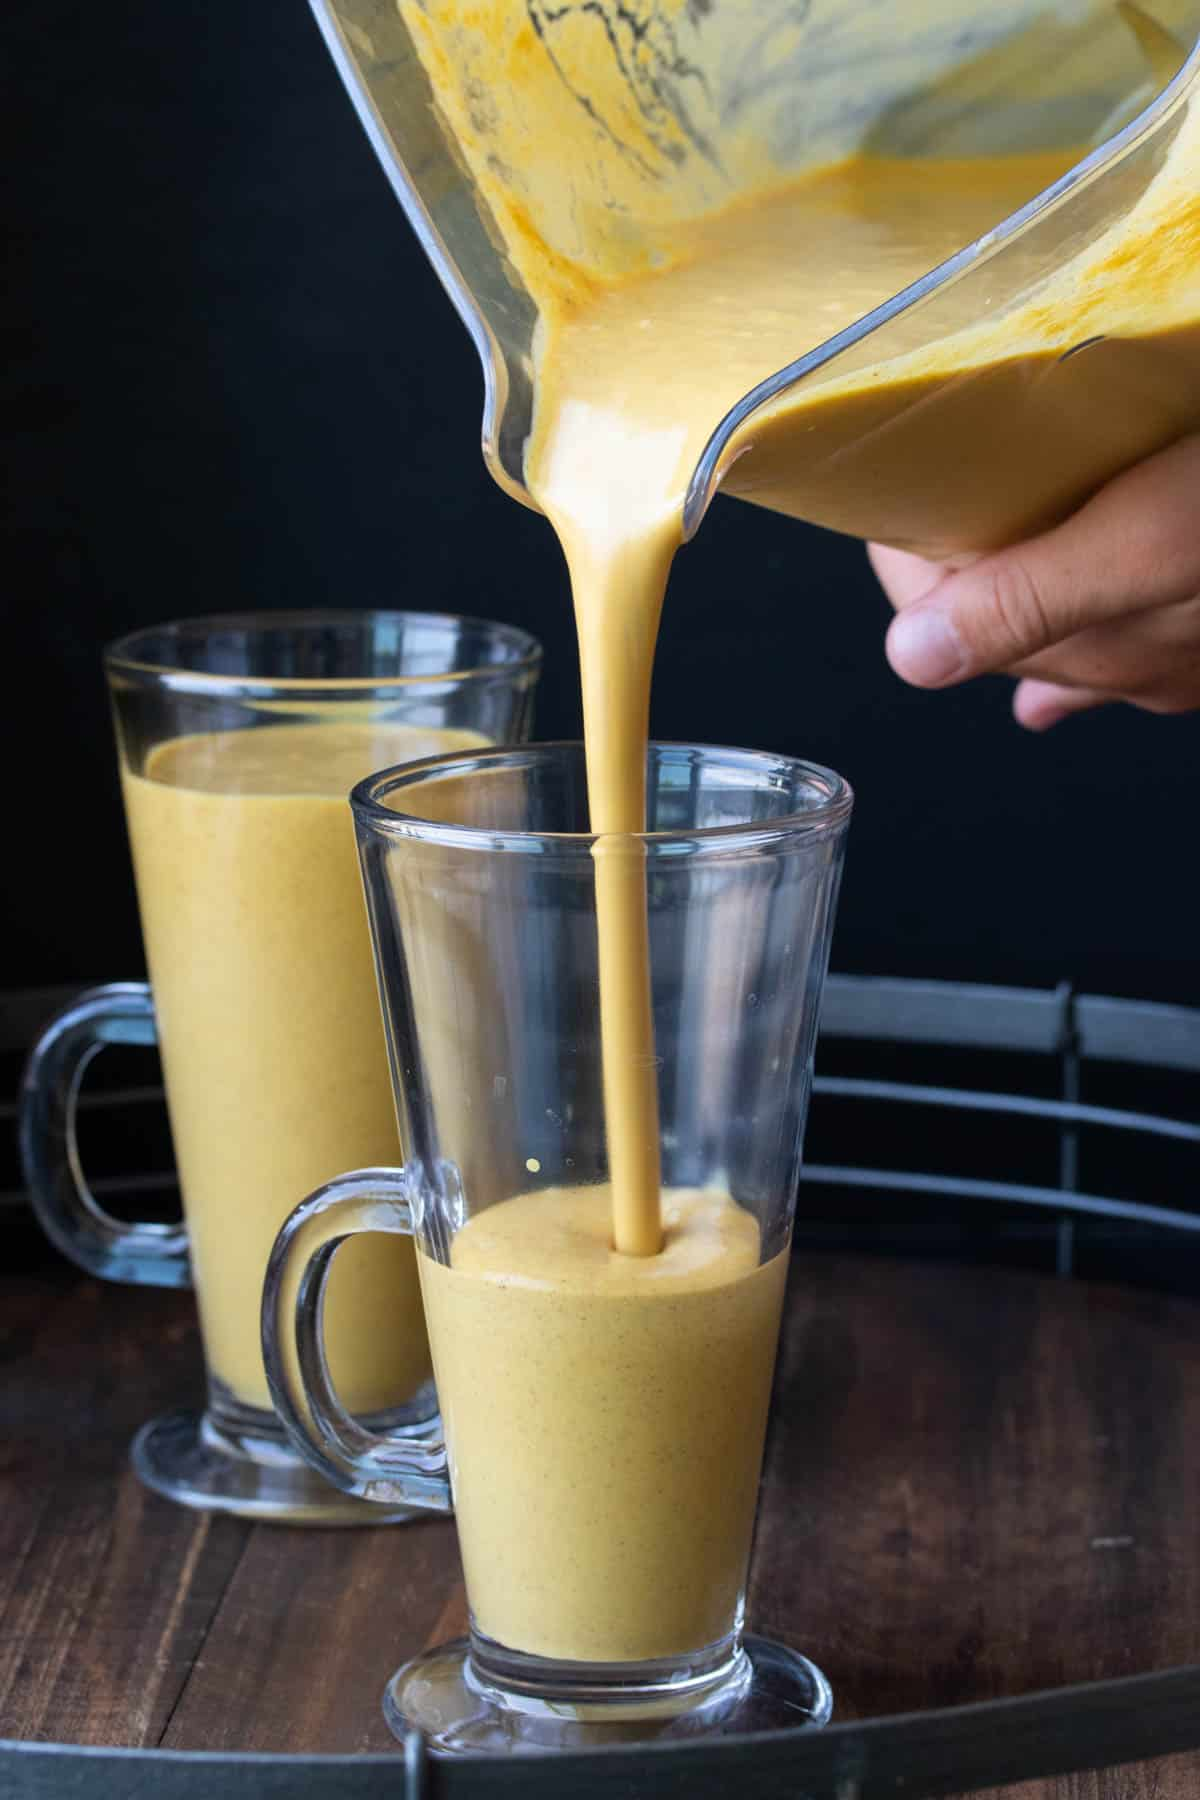 A pumpkin smoothie being poured into a glass jar